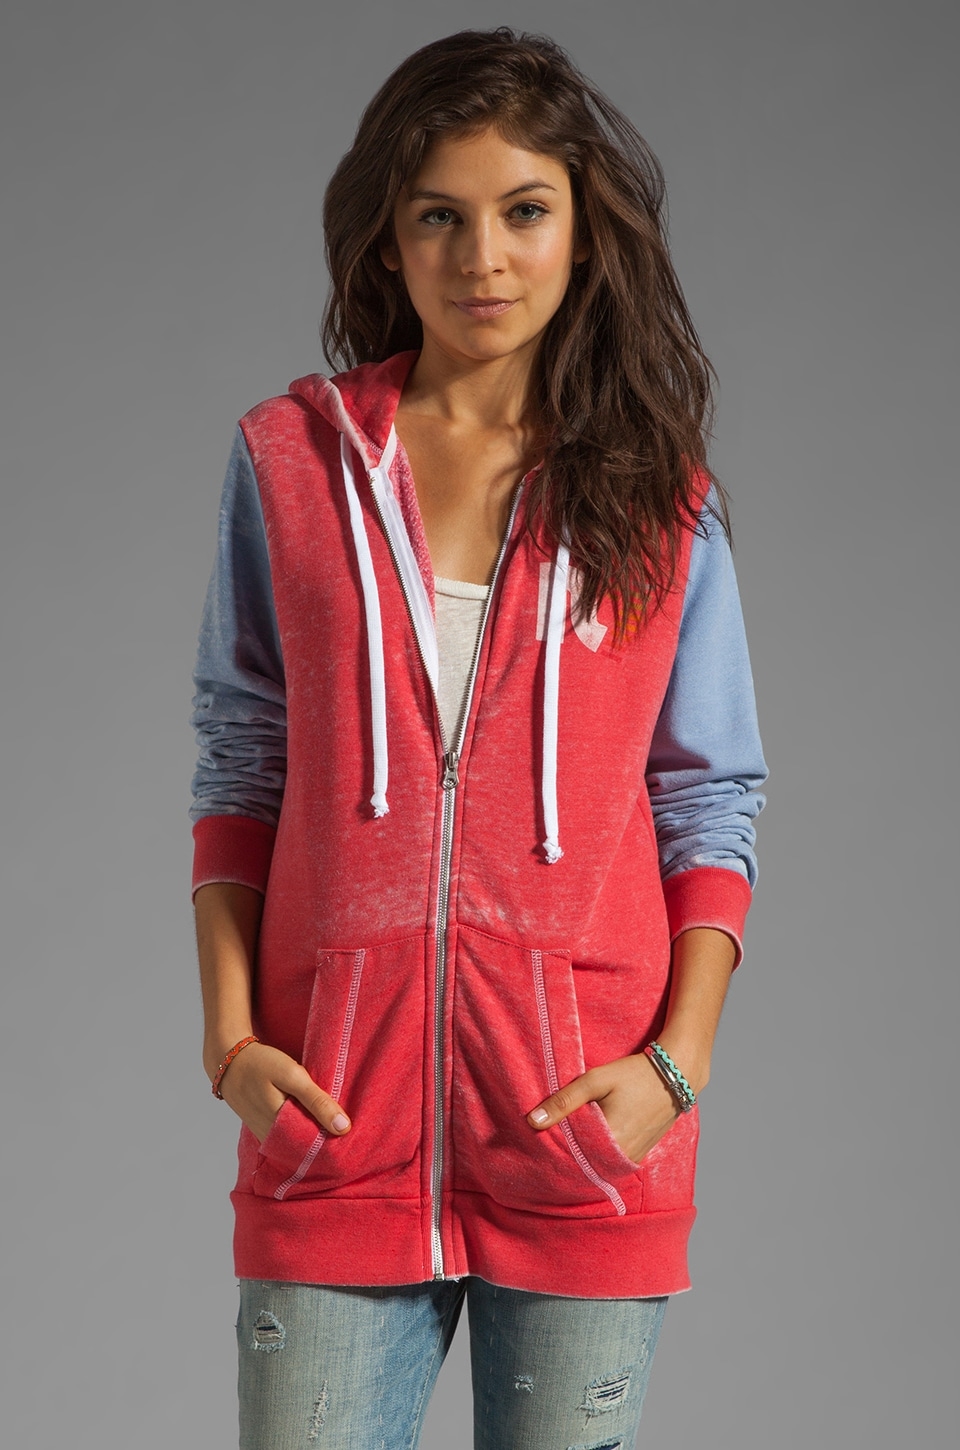 Rebel Yell Classic Zip Hoodie in Rebel Red